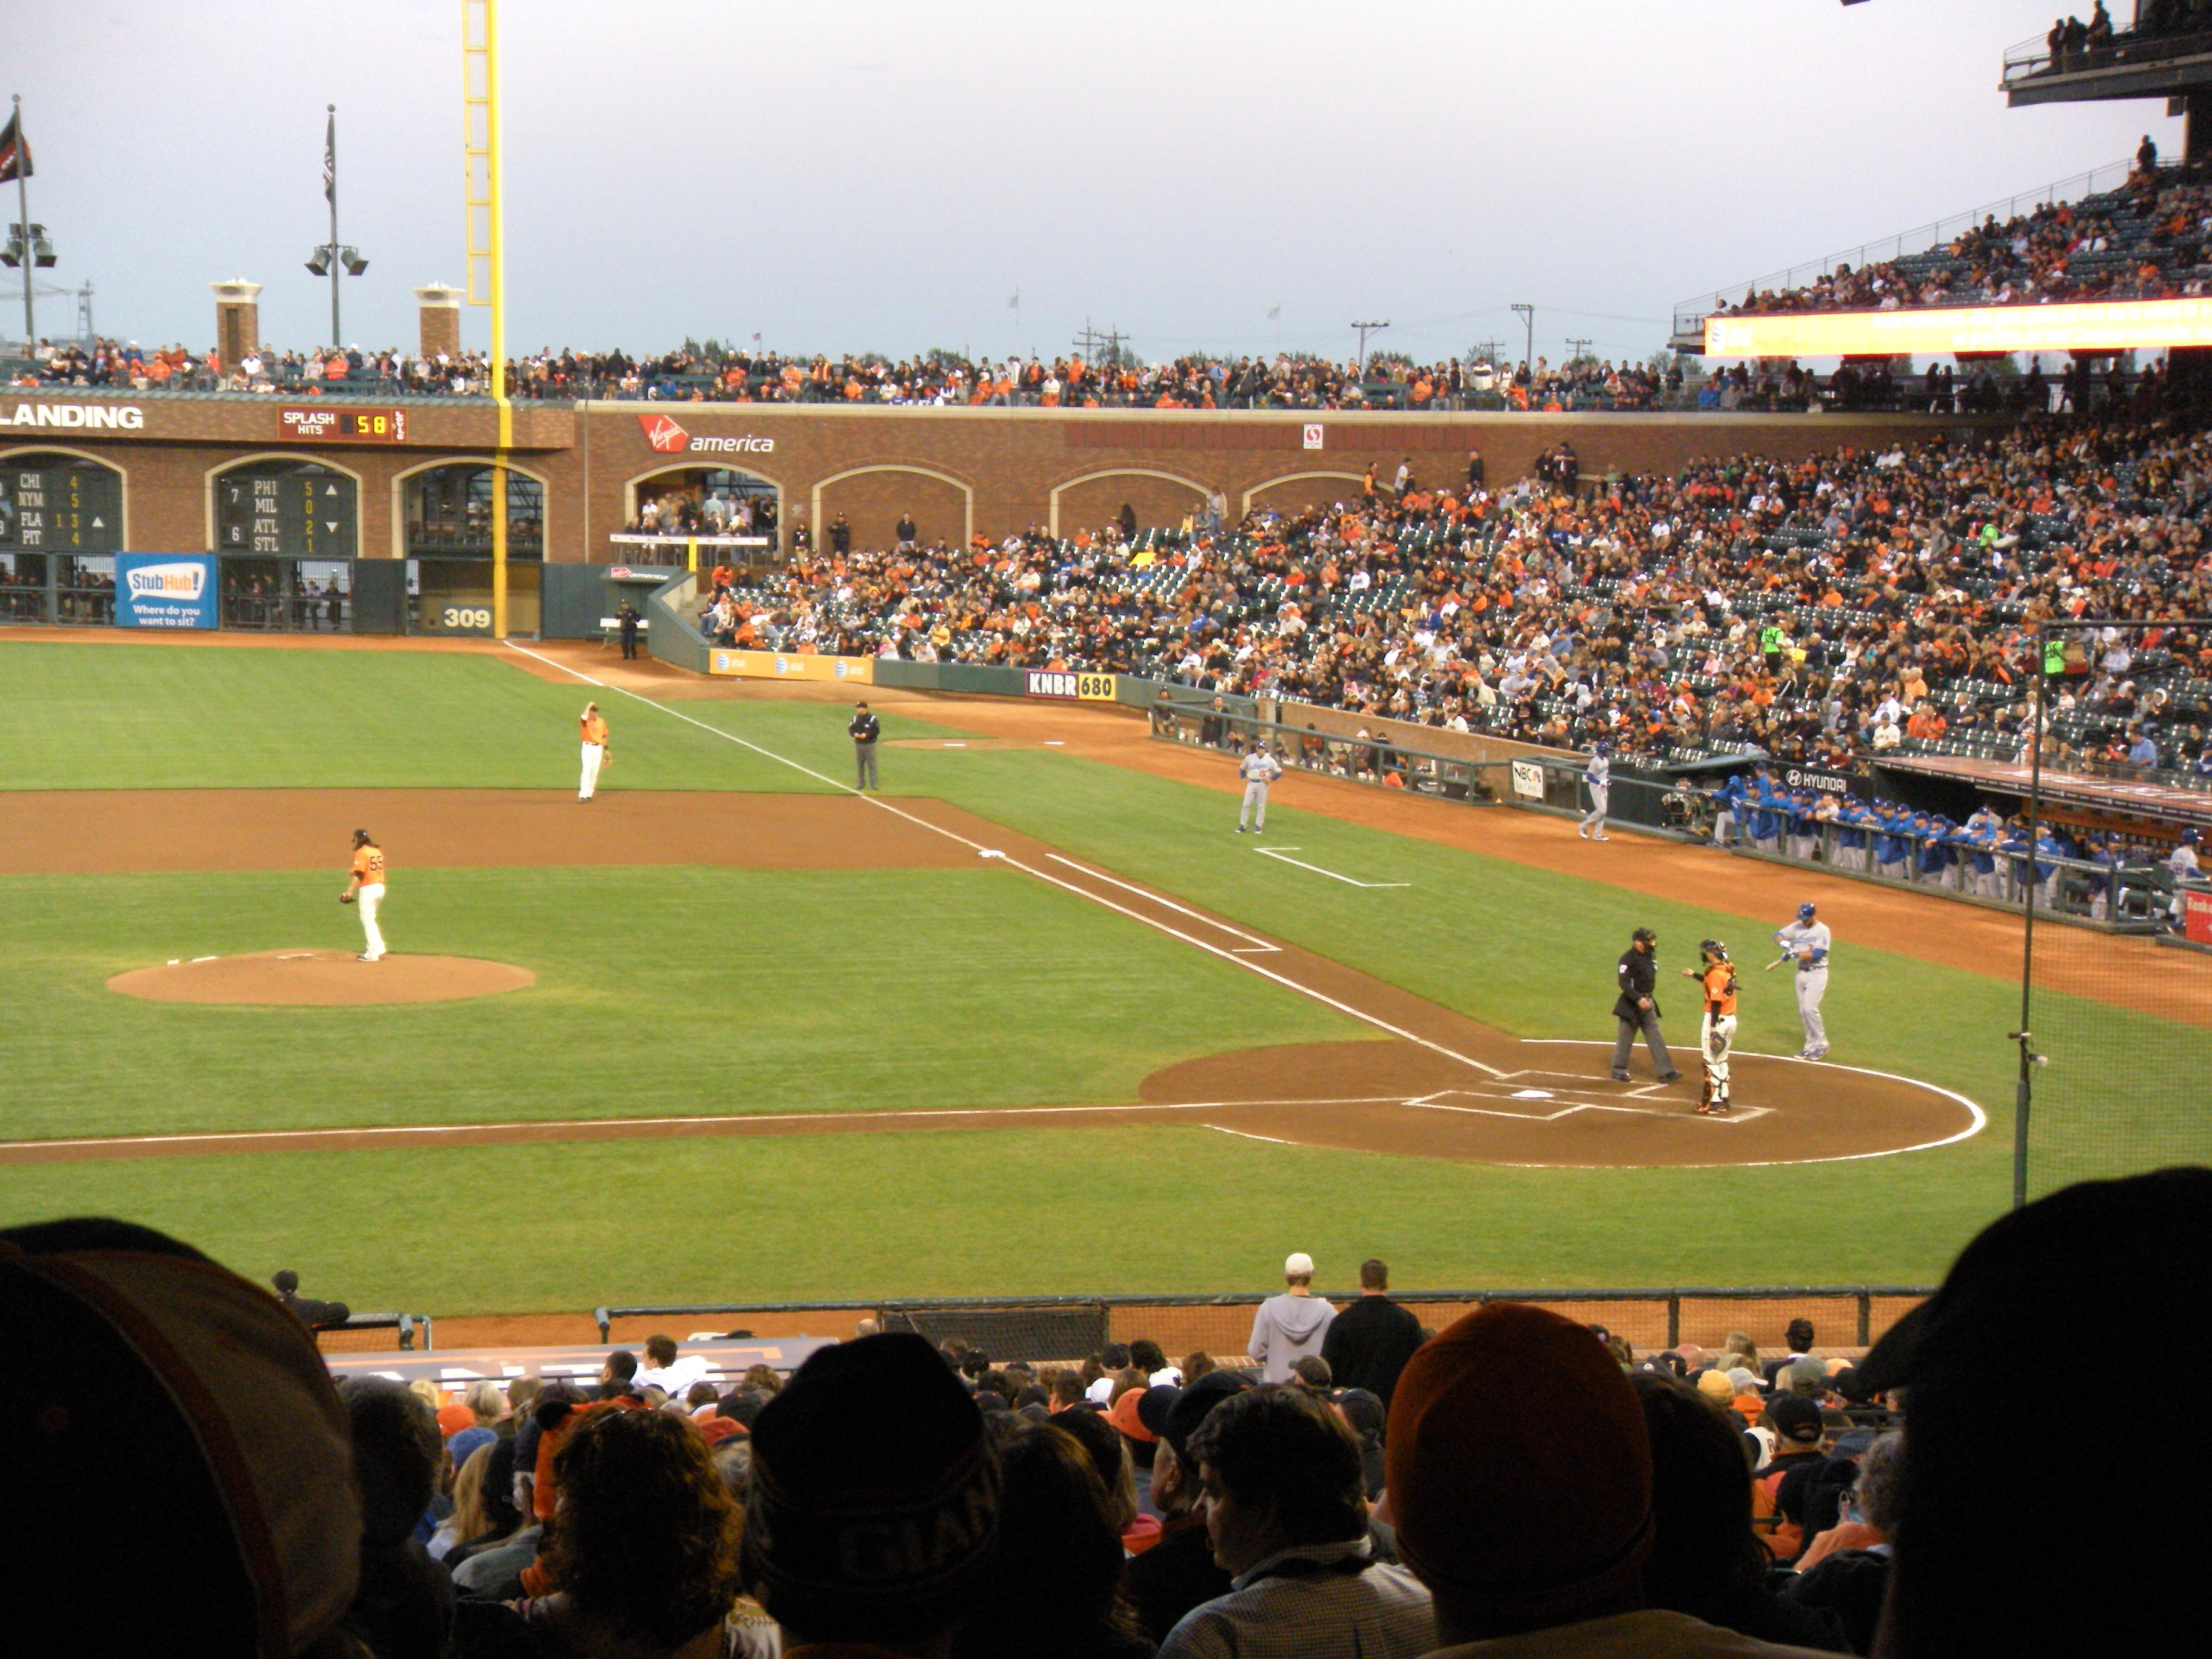 AT&T Park Section 122 Row 39 Seat 17,18